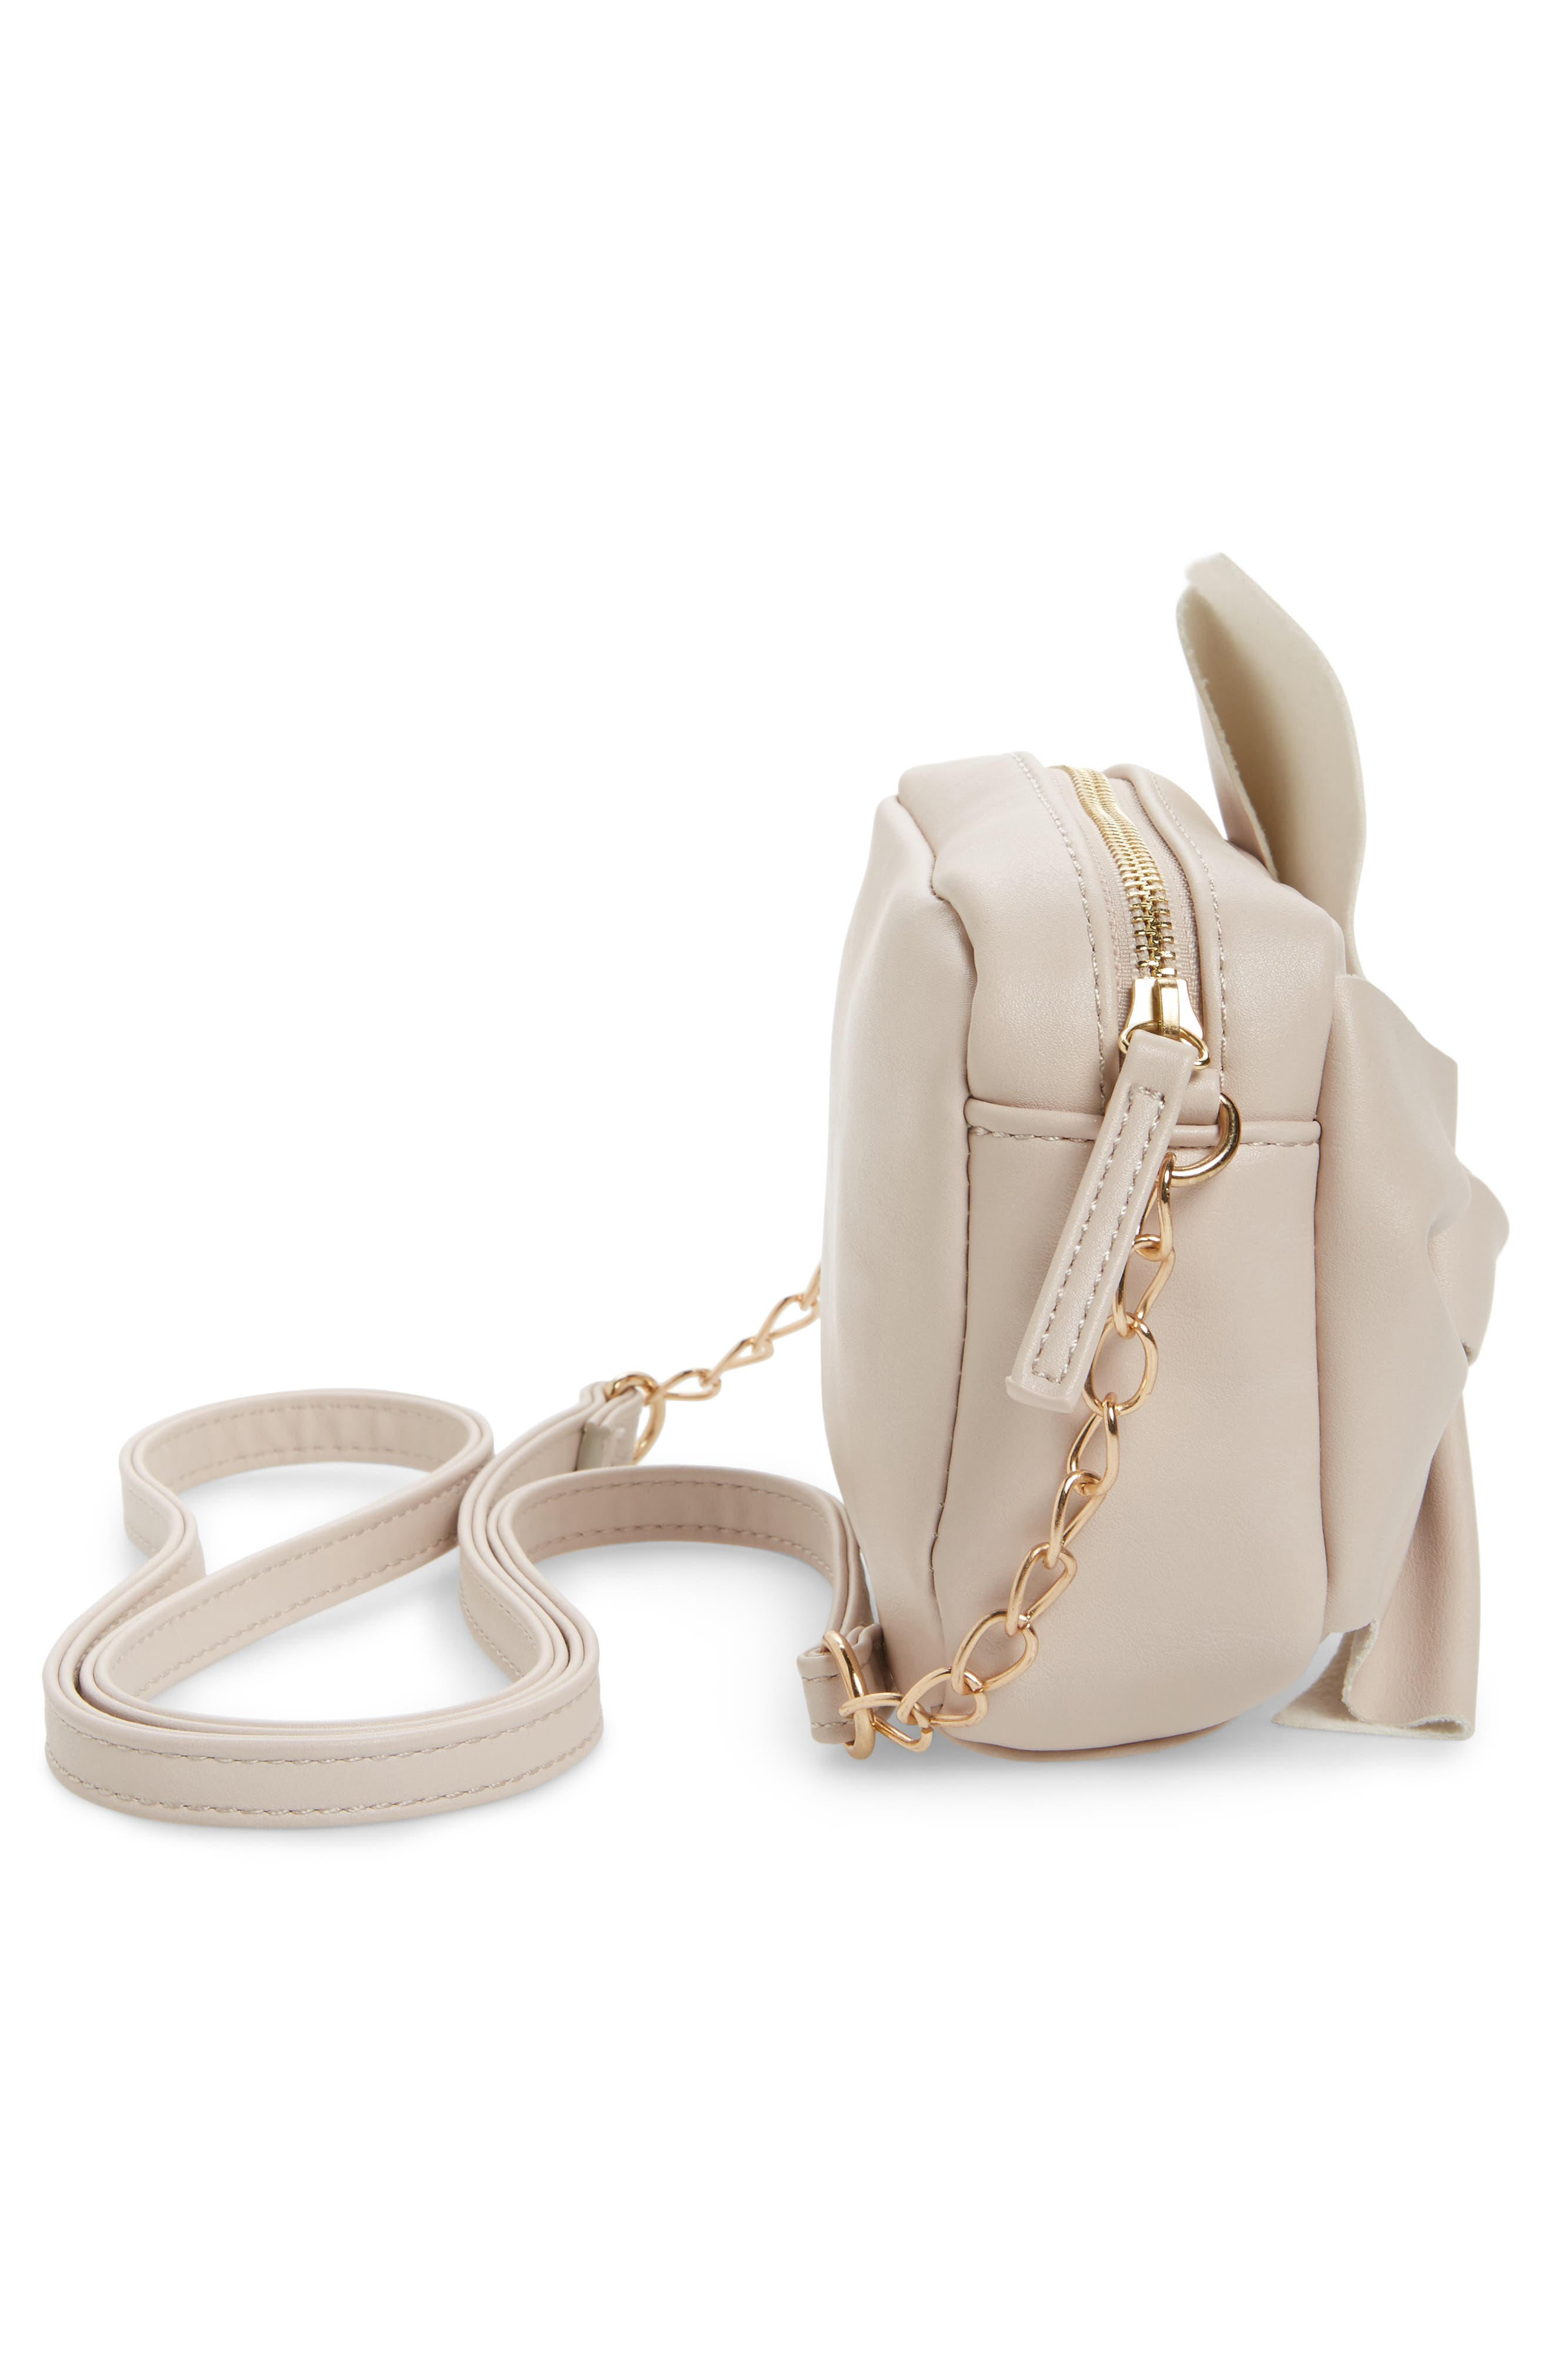 Alternate Image 3  - OMG Knotted Bow Faux Leather Crossbody Bag (Big Girls)